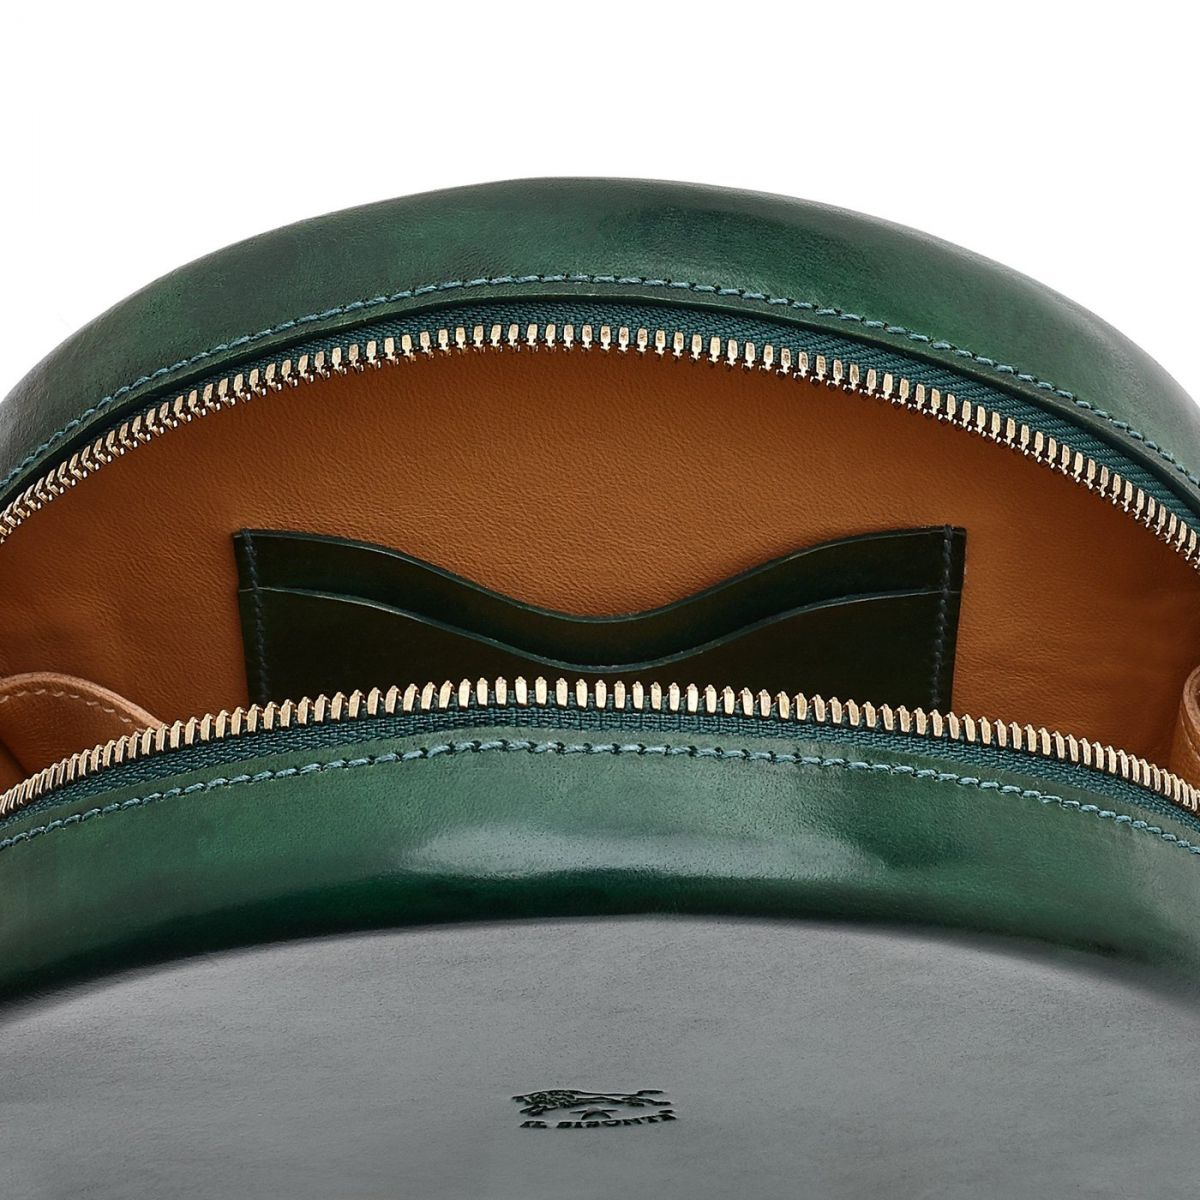 Women's Crossbody Bag  in Leather BCR149 color Green | Details